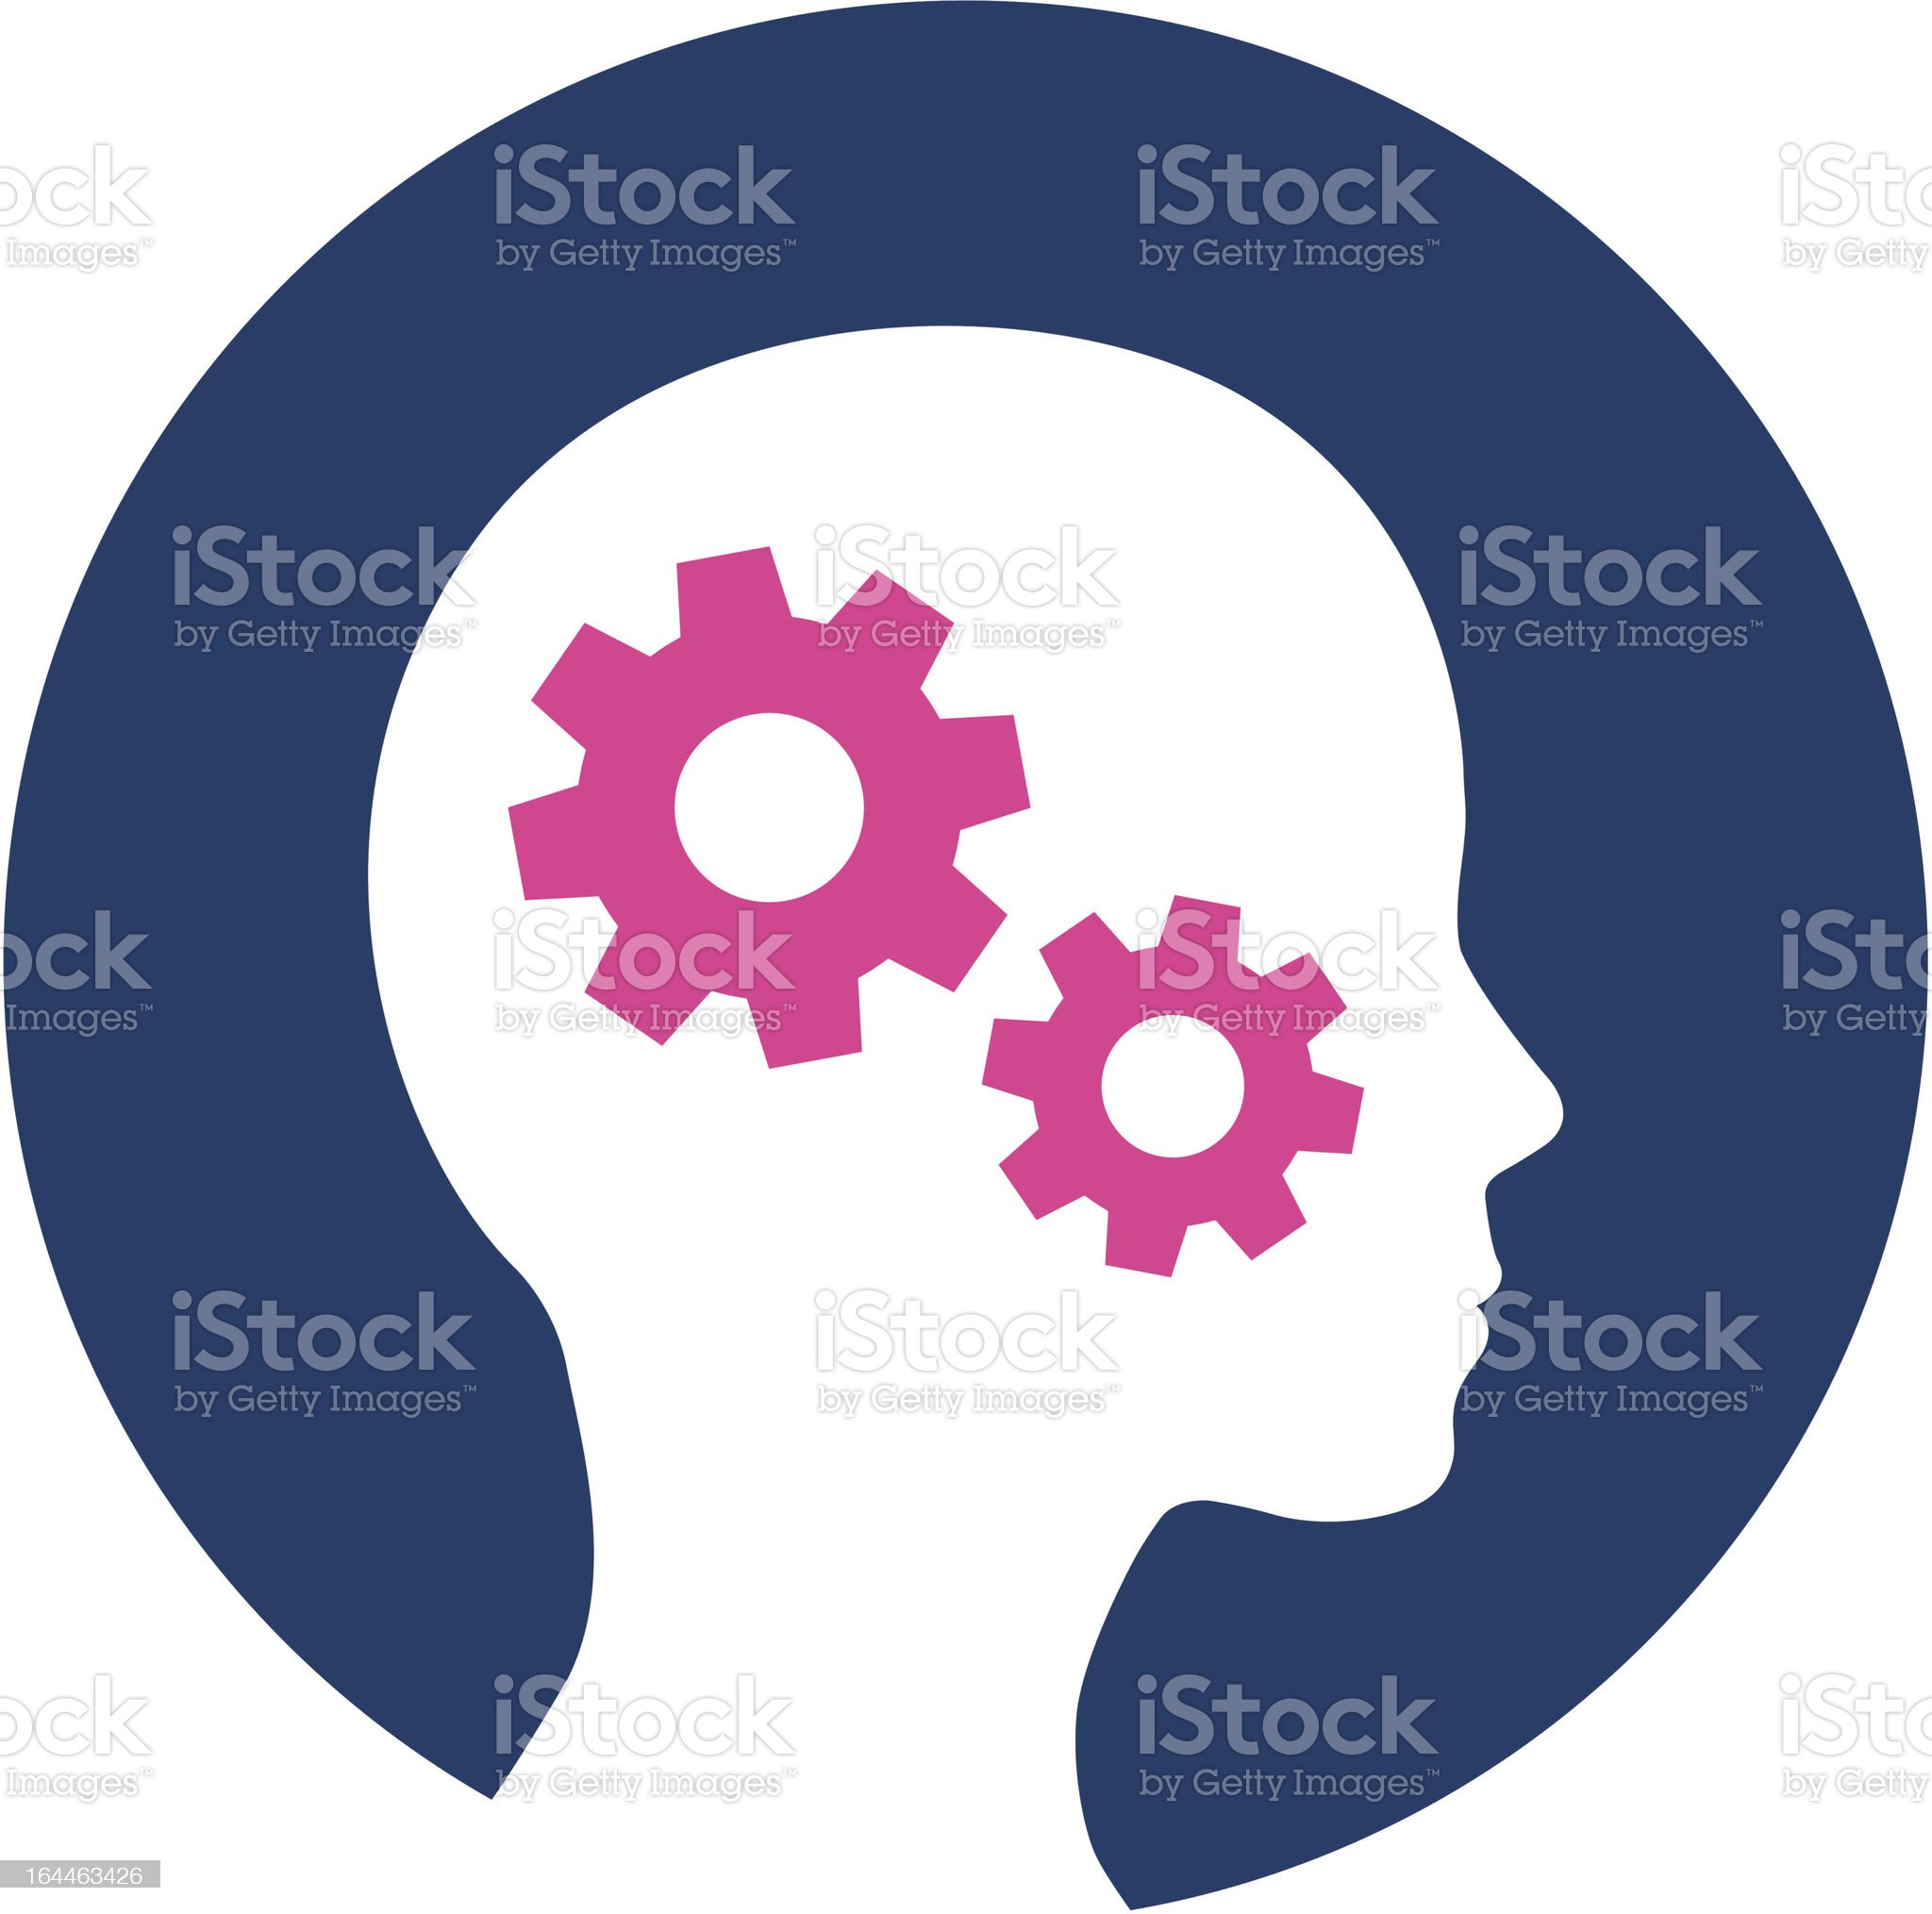 Head with working cogs illustration royalty-free stock vector art